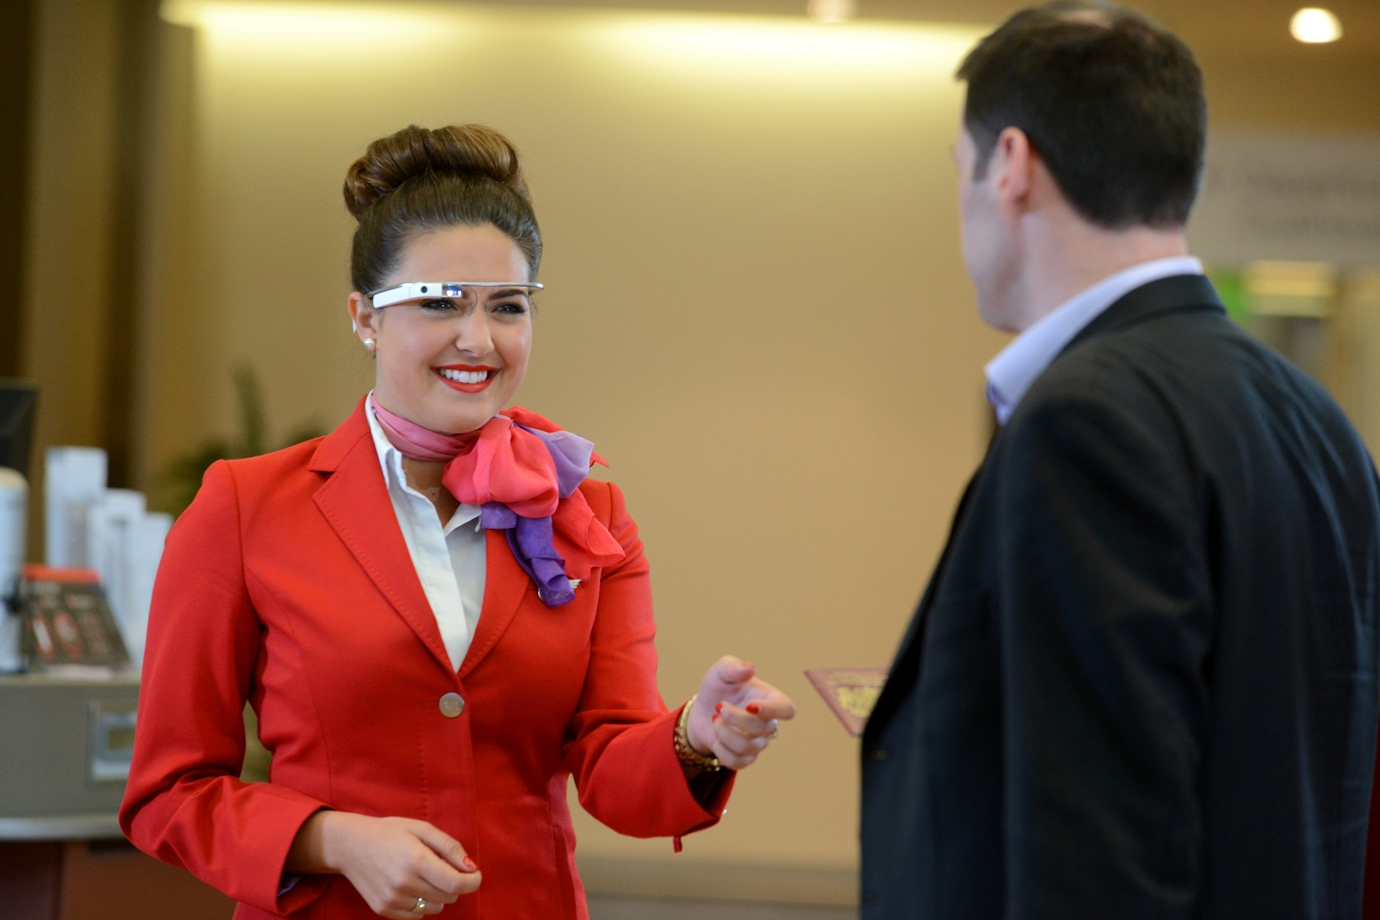 Virgin Atlantic x Google Glass